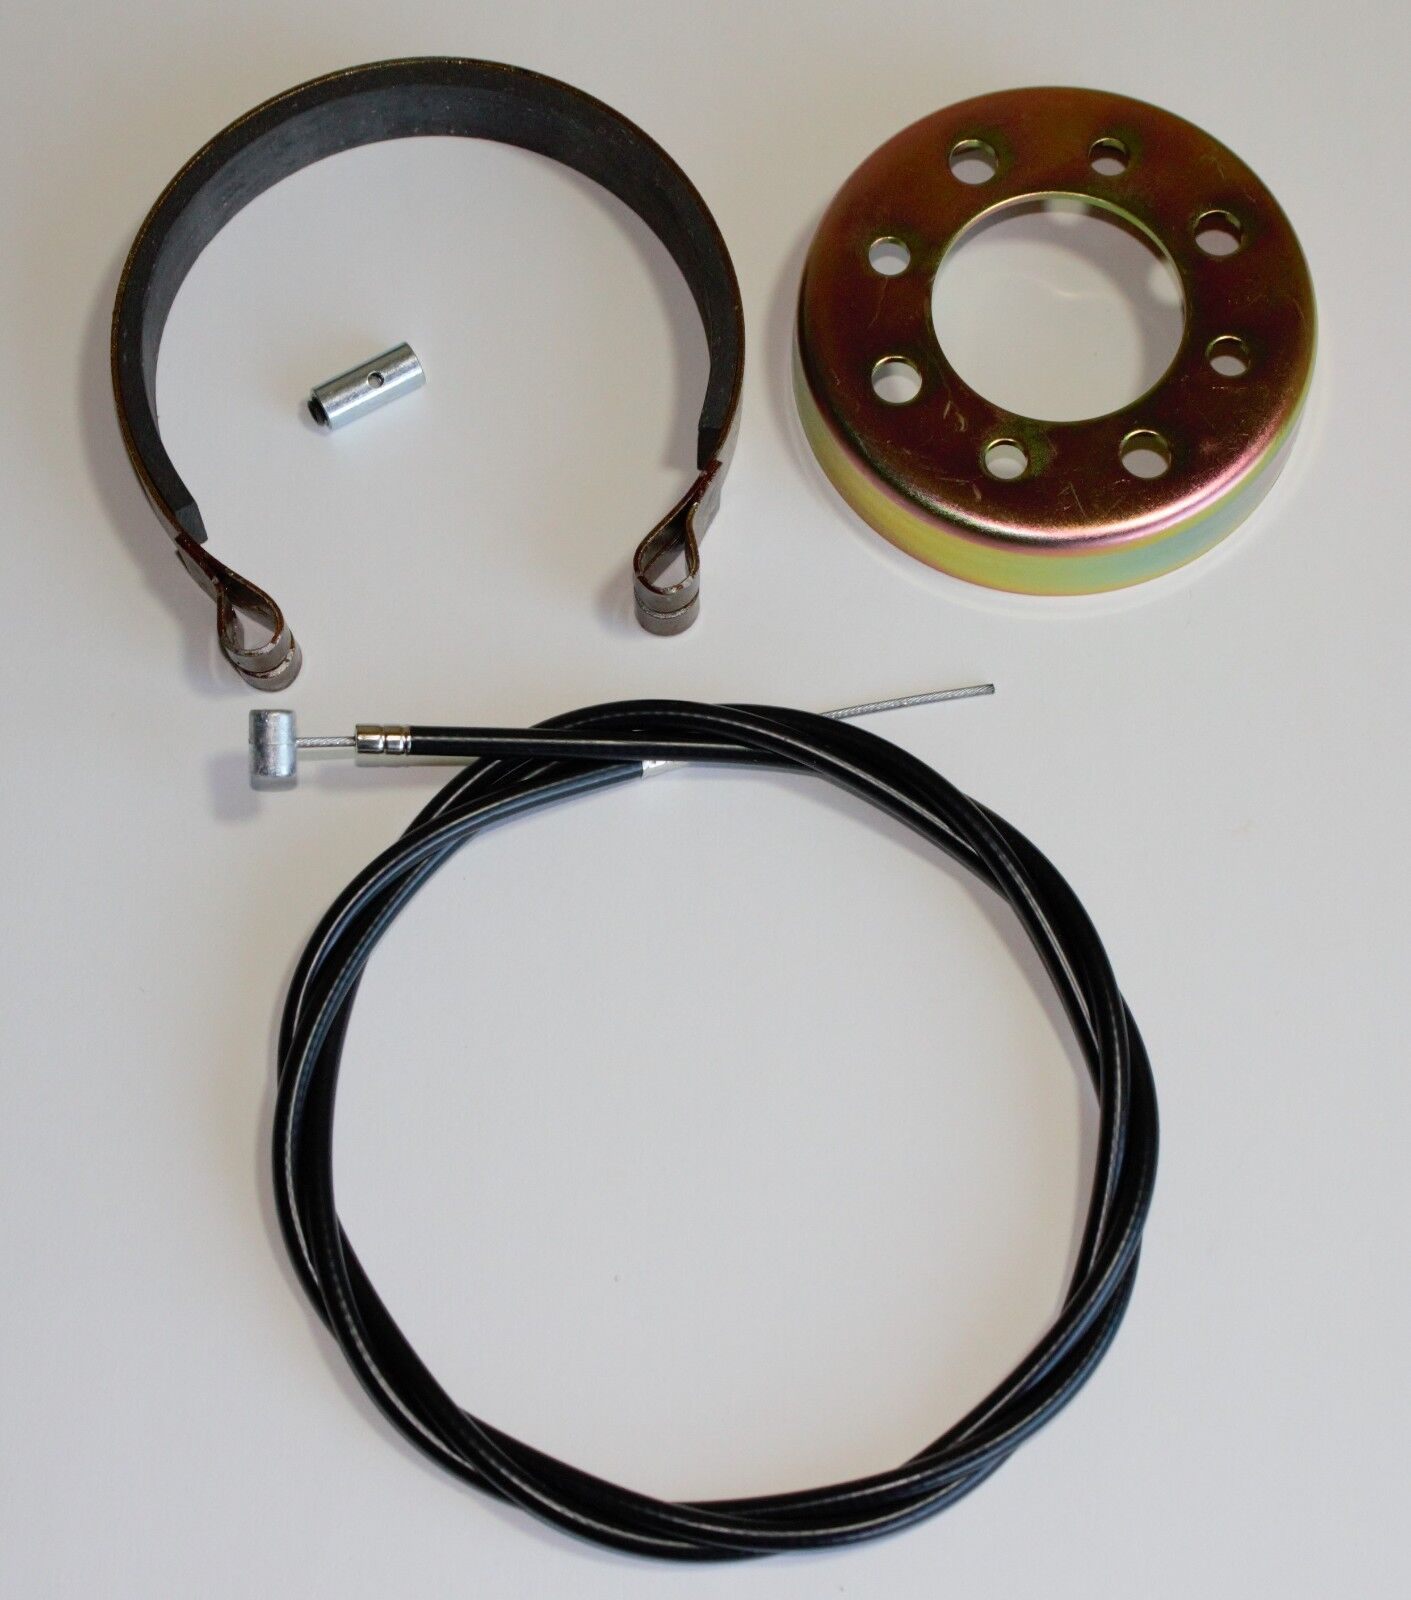 Azusa Go Kart, Mini Bike Brake Band And Drum With Heavy Duty Cable. USA